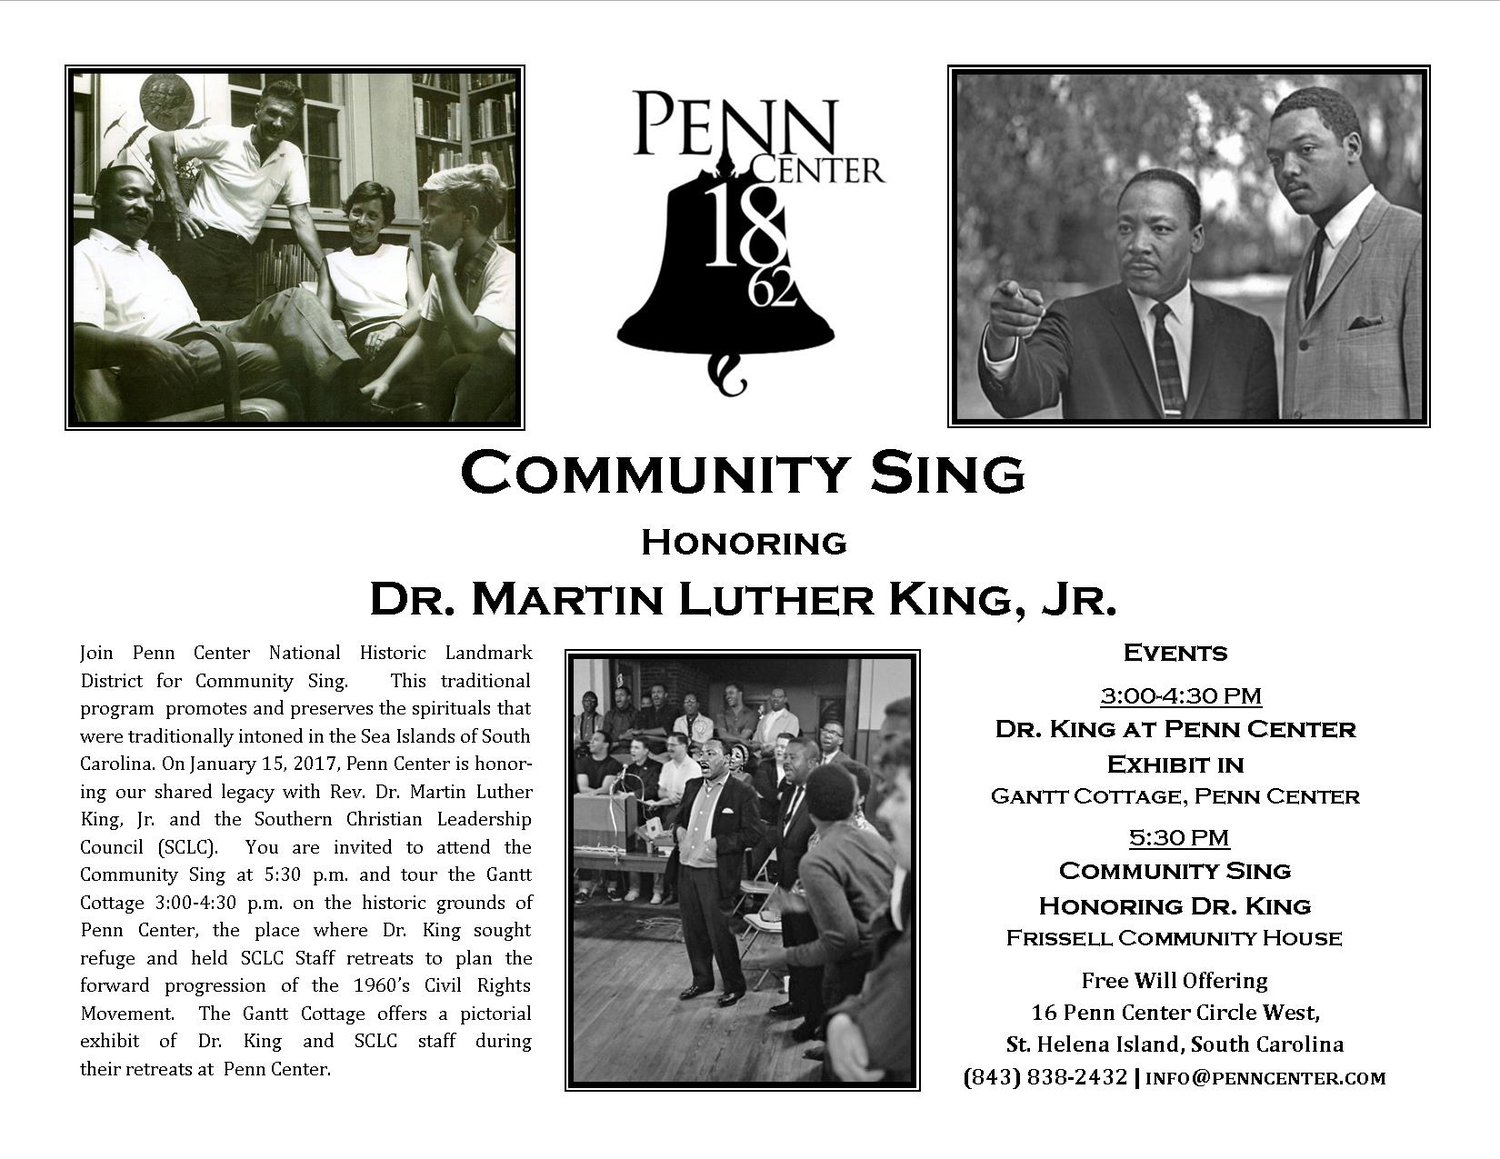 COMMUNITY SING HONORING DR. MARTIN LUTHER KING, JR.